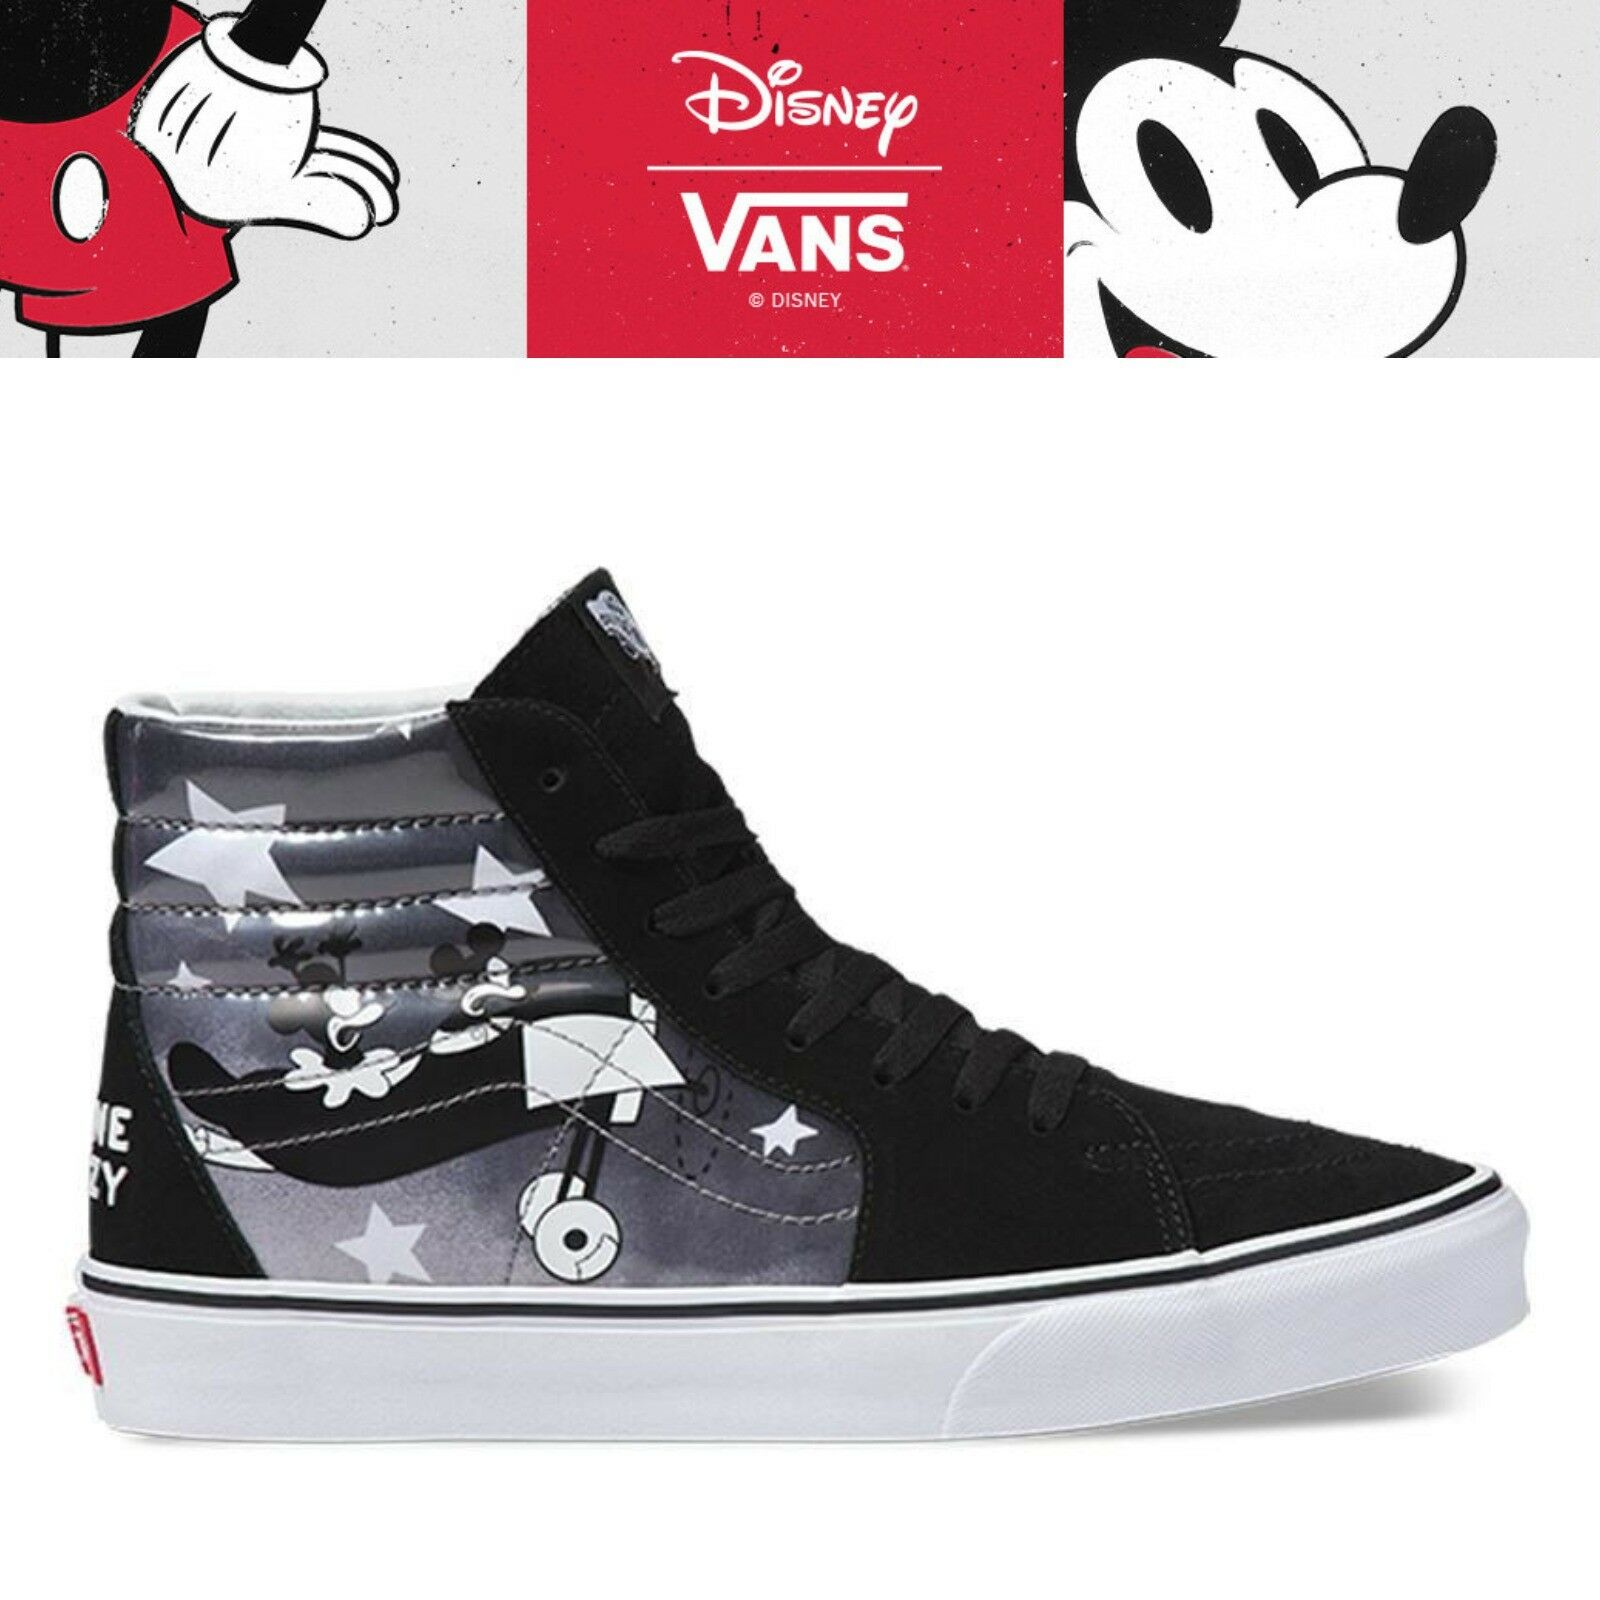 New VANS X DISNEY SK8-HI Mickey Mouse 90th Collection - PLANE CRAZY TRUE Weiß